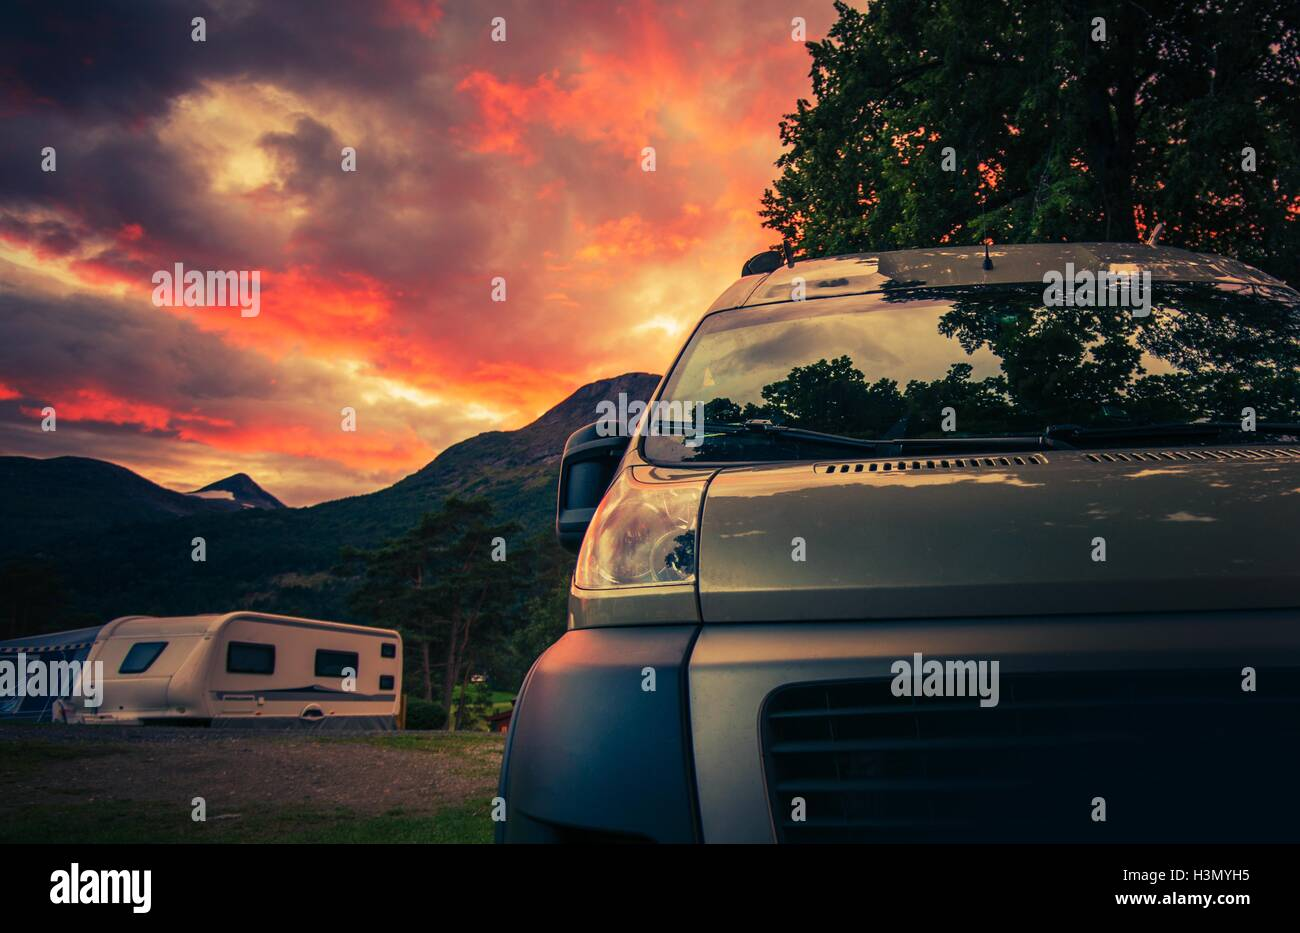 Scenic RV Park Camping During Beautiful Summer Sunset. Motorhome and Travel Trailers in the Background. - Stock Image